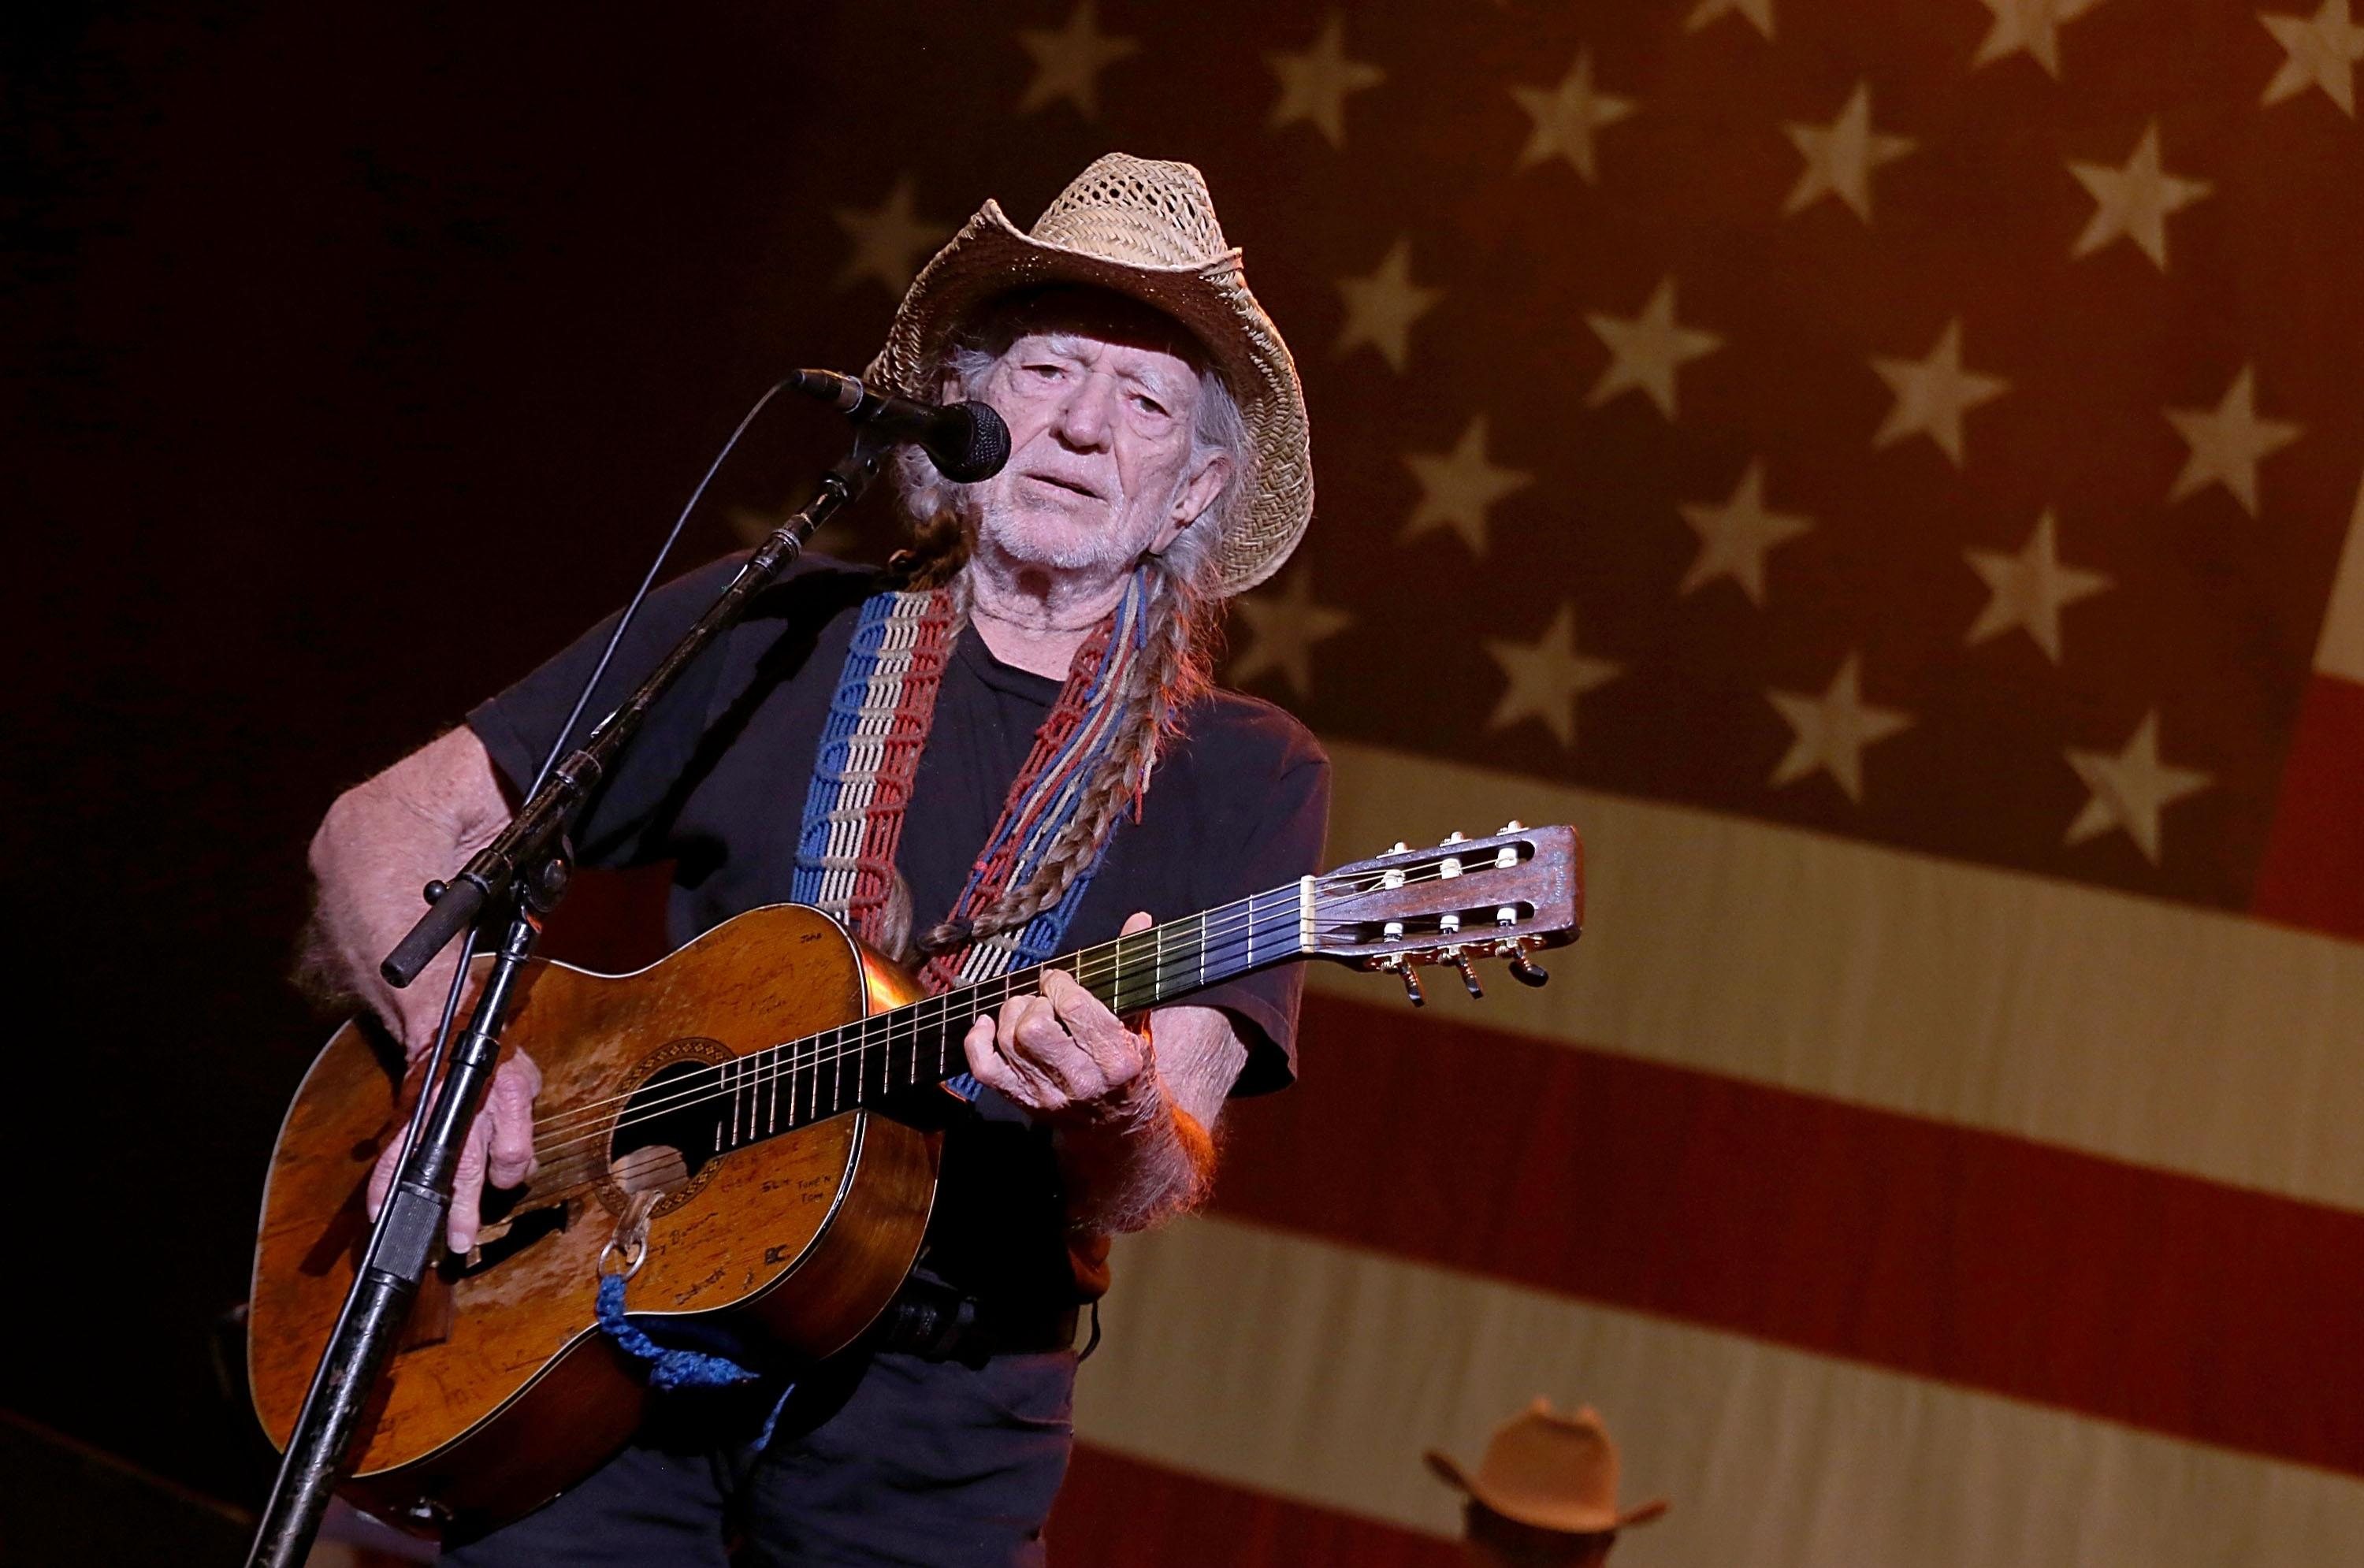 Willie Nelson upsets fans with plans to perform at Beto O'Rourke rally